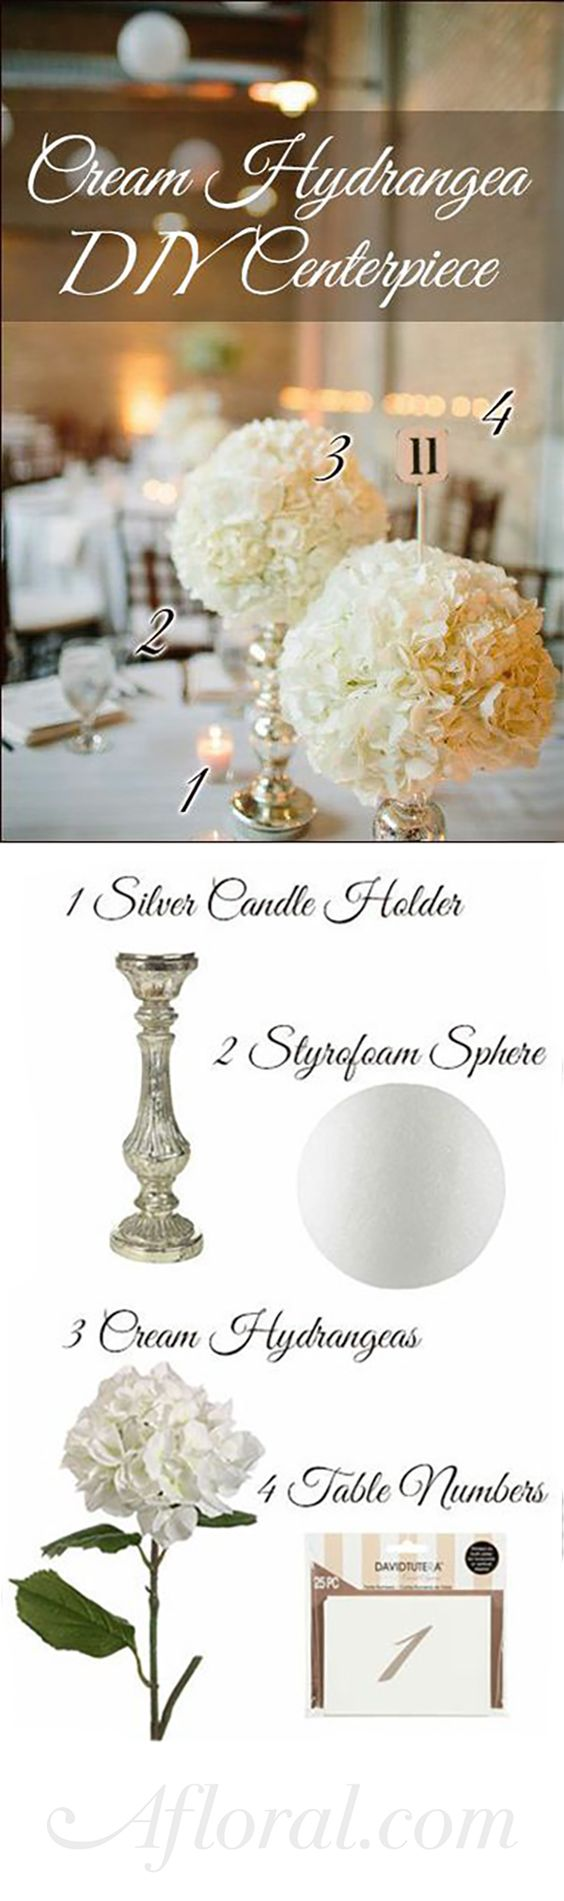 Affordable wedding centerpieces original ideas tips diys diy hydrangea centerpiece ideas for your wedding reception solutioingenieria